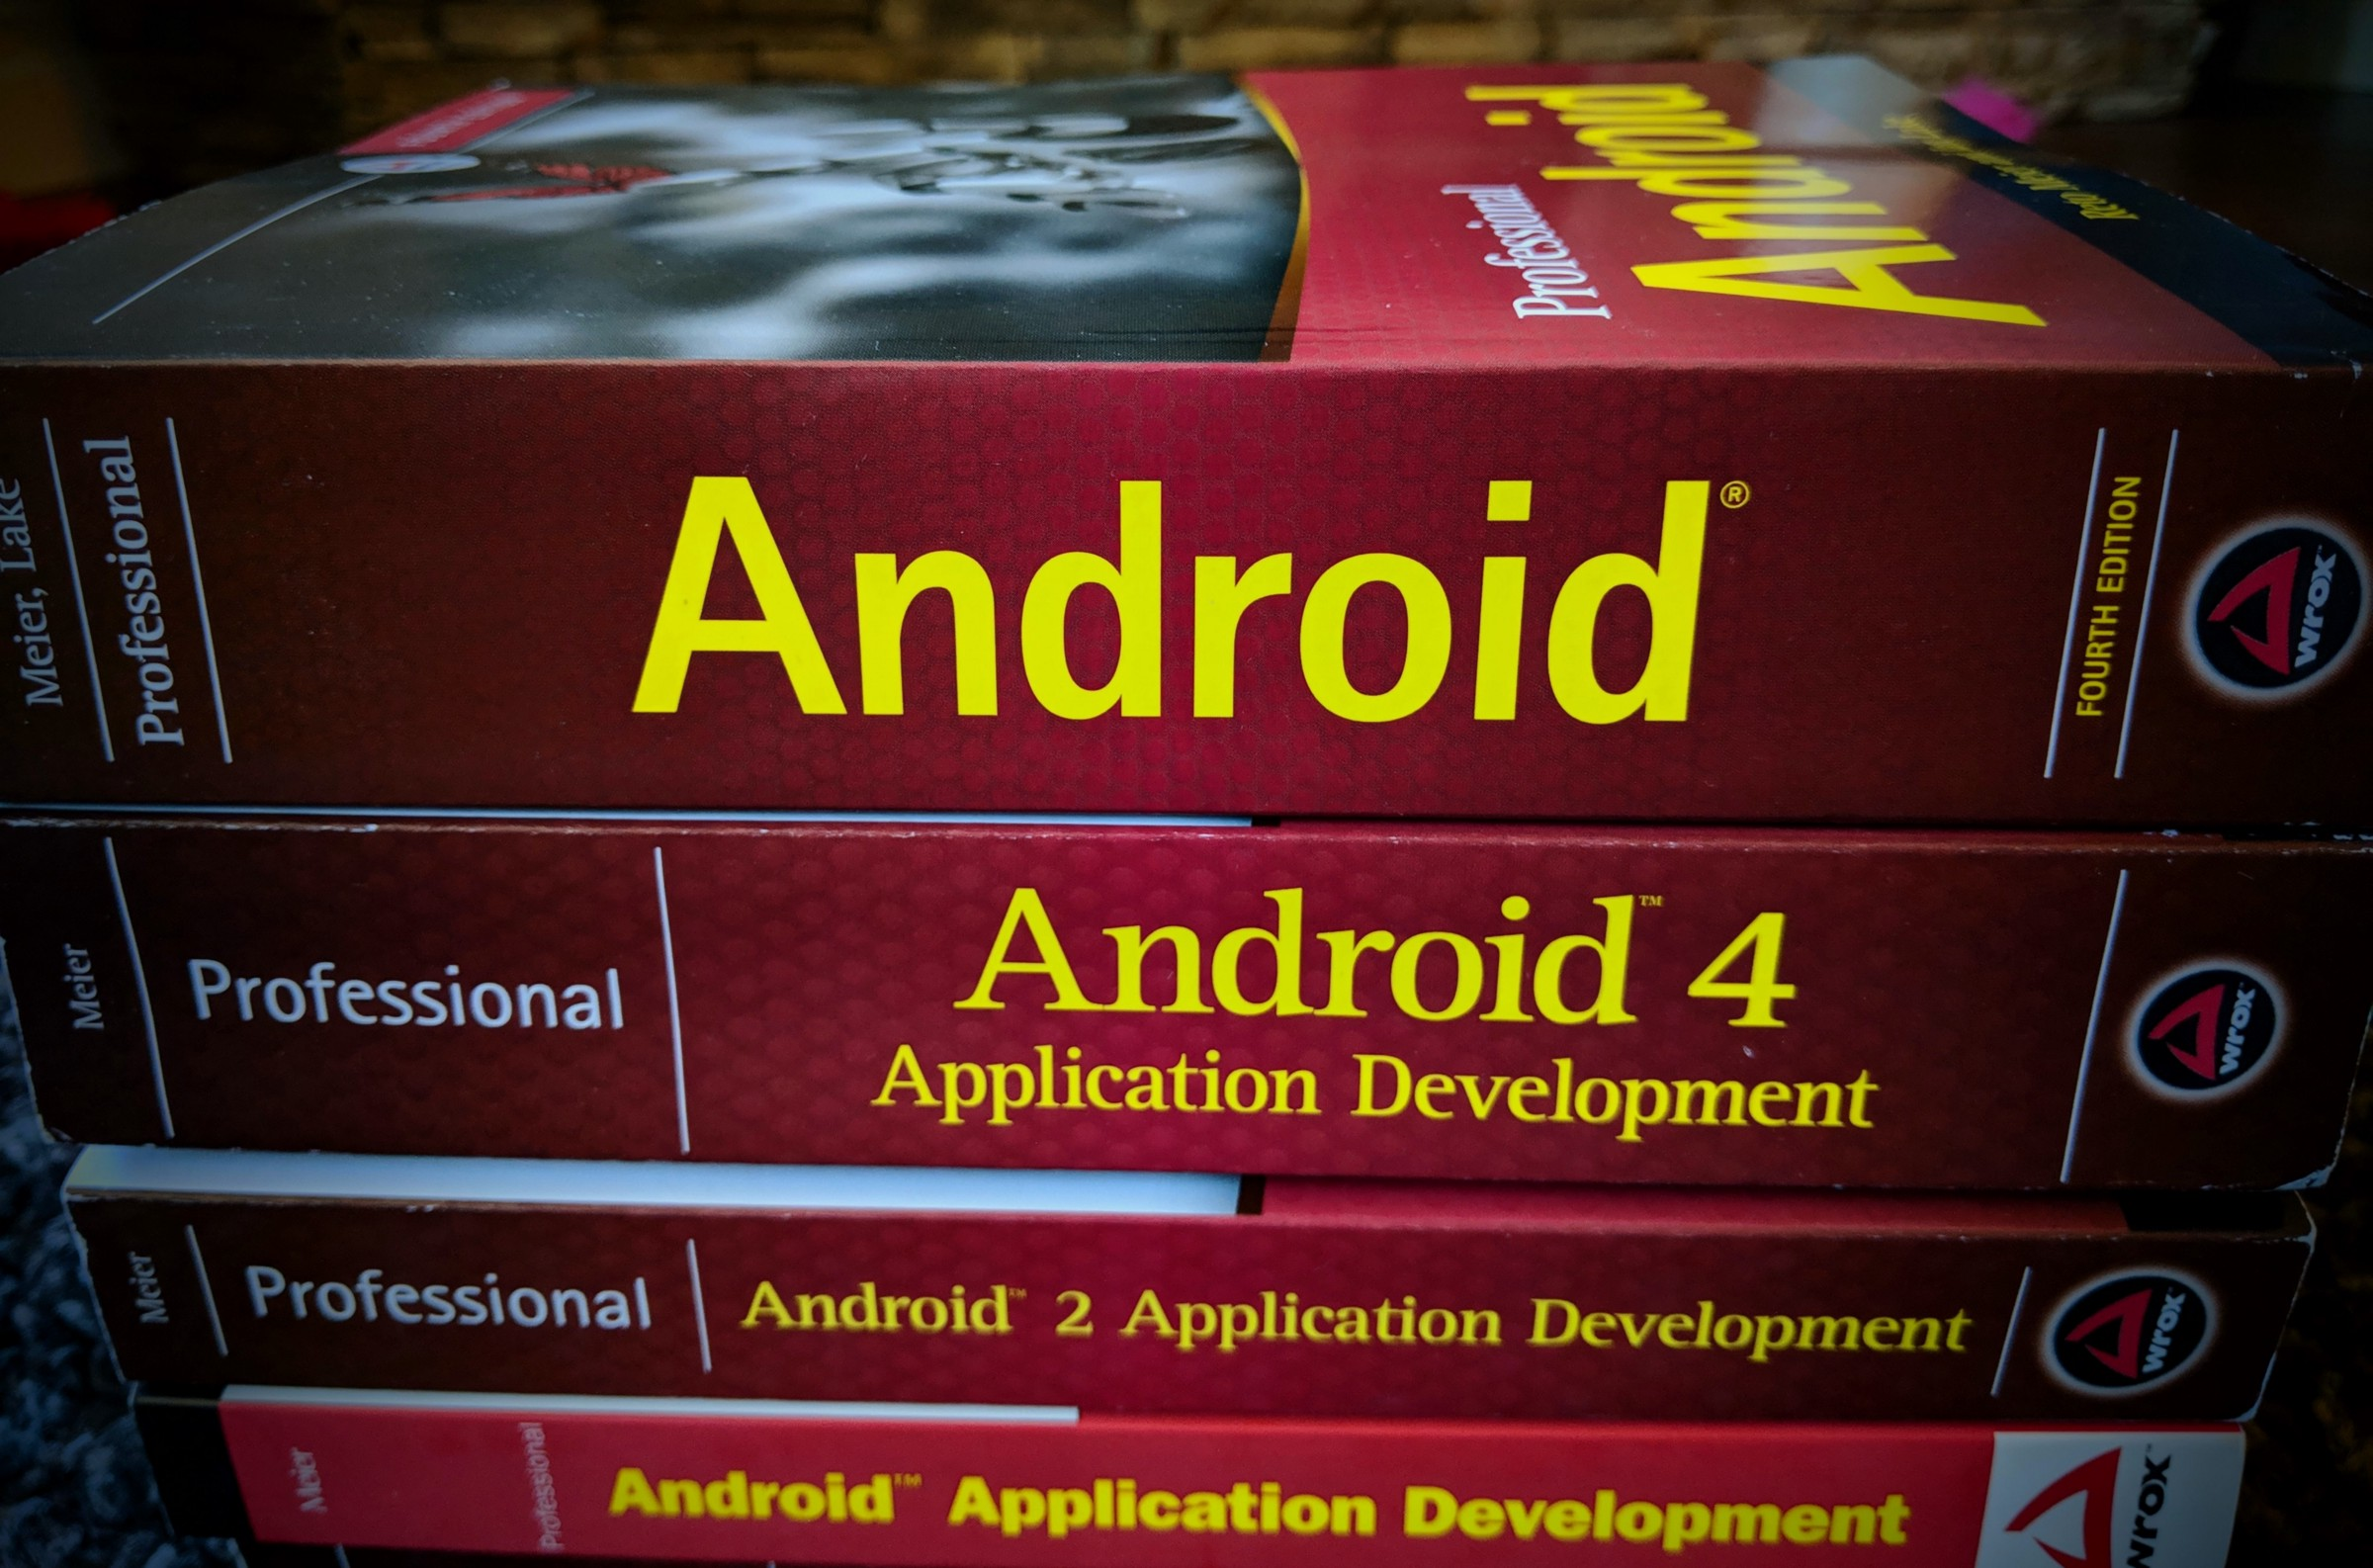 Professional Android 4 Application Development By Reto Meier Pdf